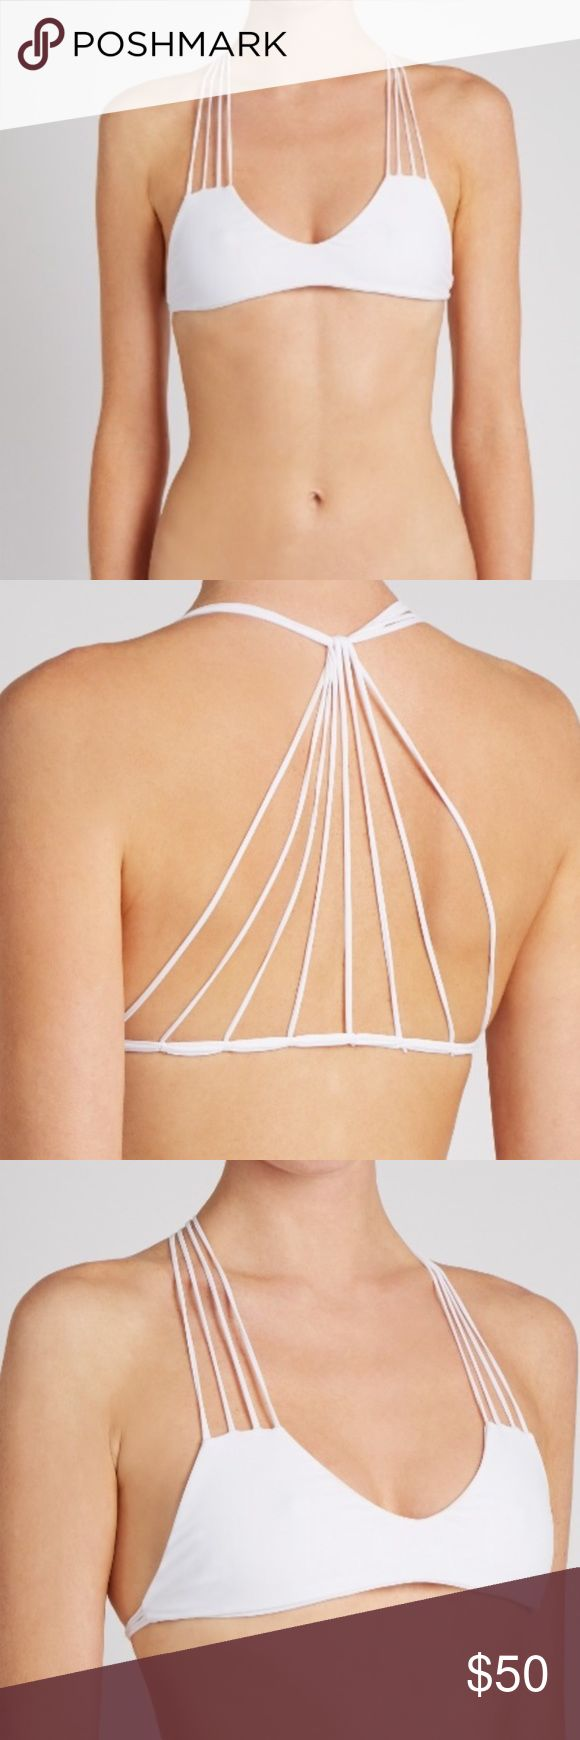 • banyans string back bikini top • This white Banyans bikini top is a sleek example: it's cut to a scoop-neck shape and suspended from multiple strings that knot at the back. Team it with the matching briefs poolside. White, stretch fabric V-neck, multi-string shoulder straps Multi-string back, knotted back-strap detail White stretch-fabric lining Designer colour: Foam 80% nylon, 20% spandex. Hand wash Mikoh Swim Bikinis